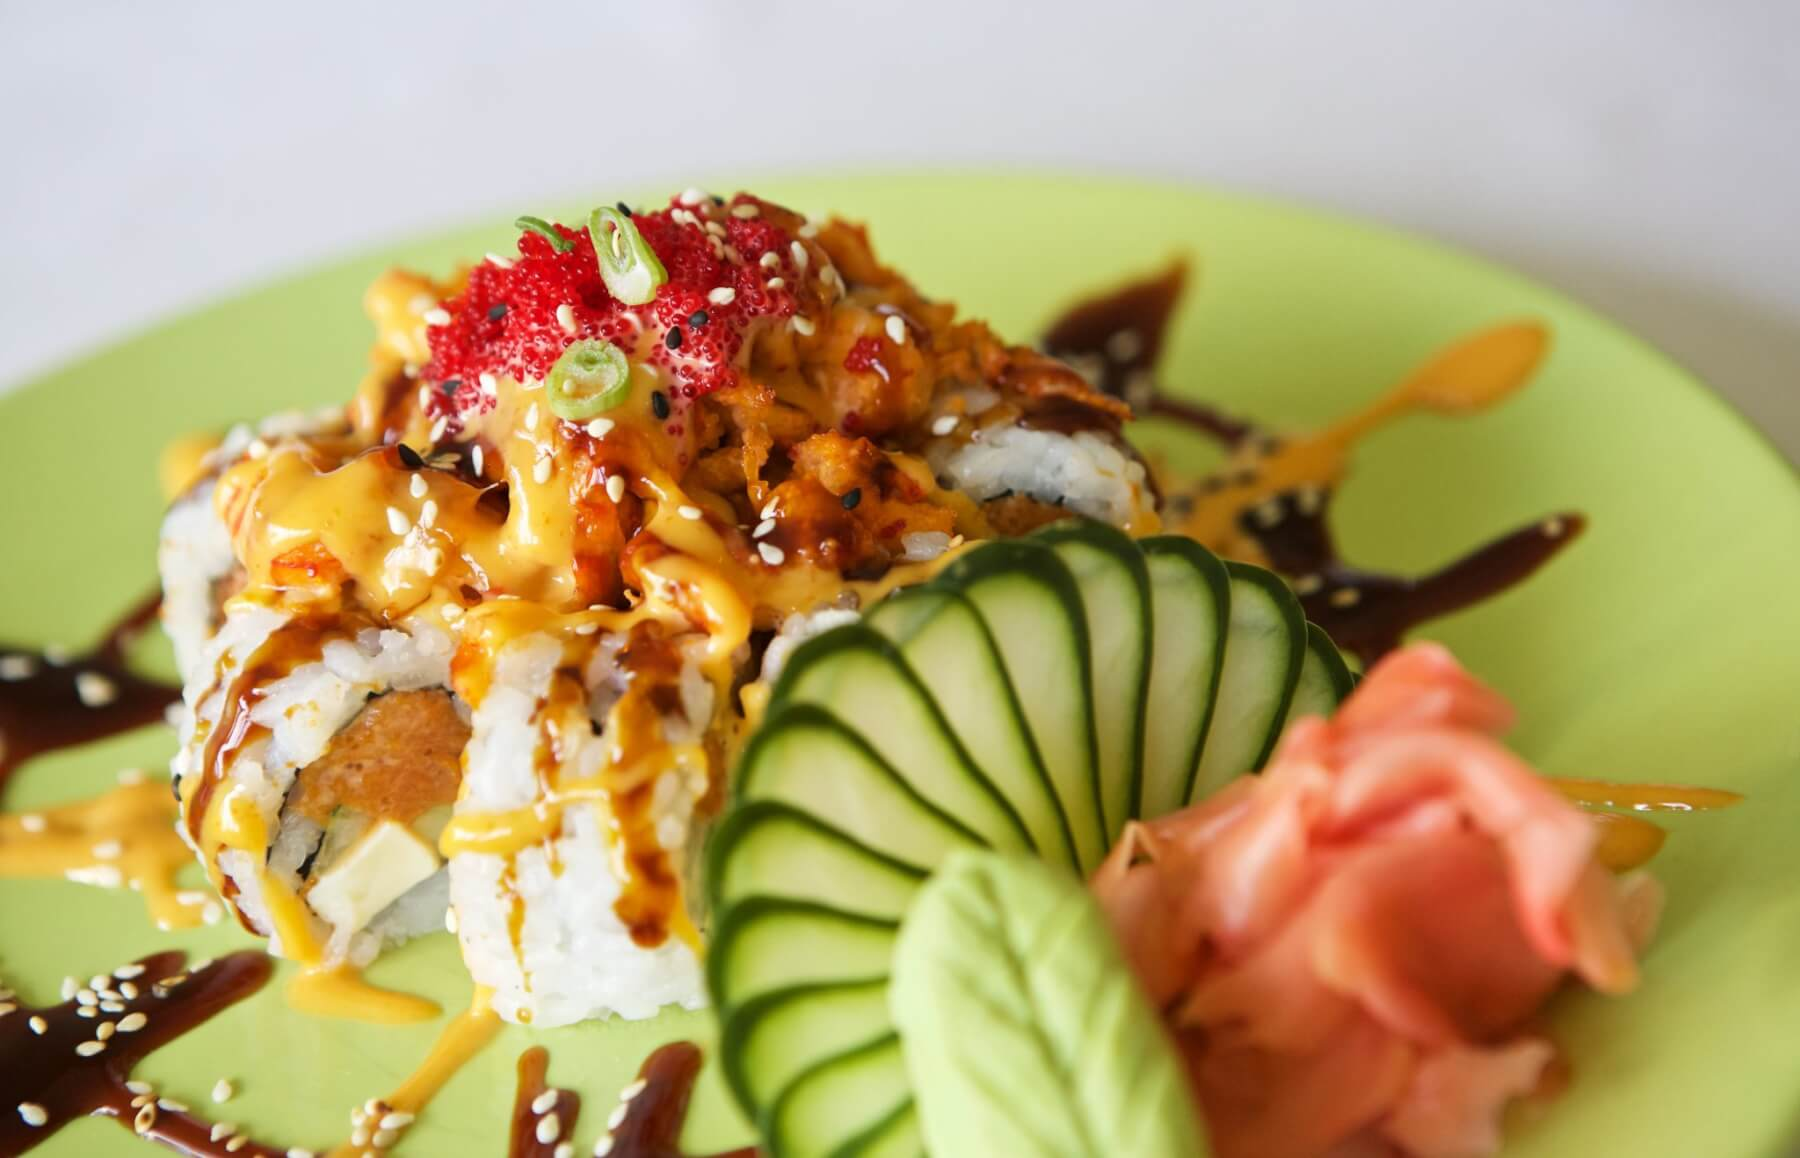 Bamboo Fusion rolls out quality sushi at familiar location